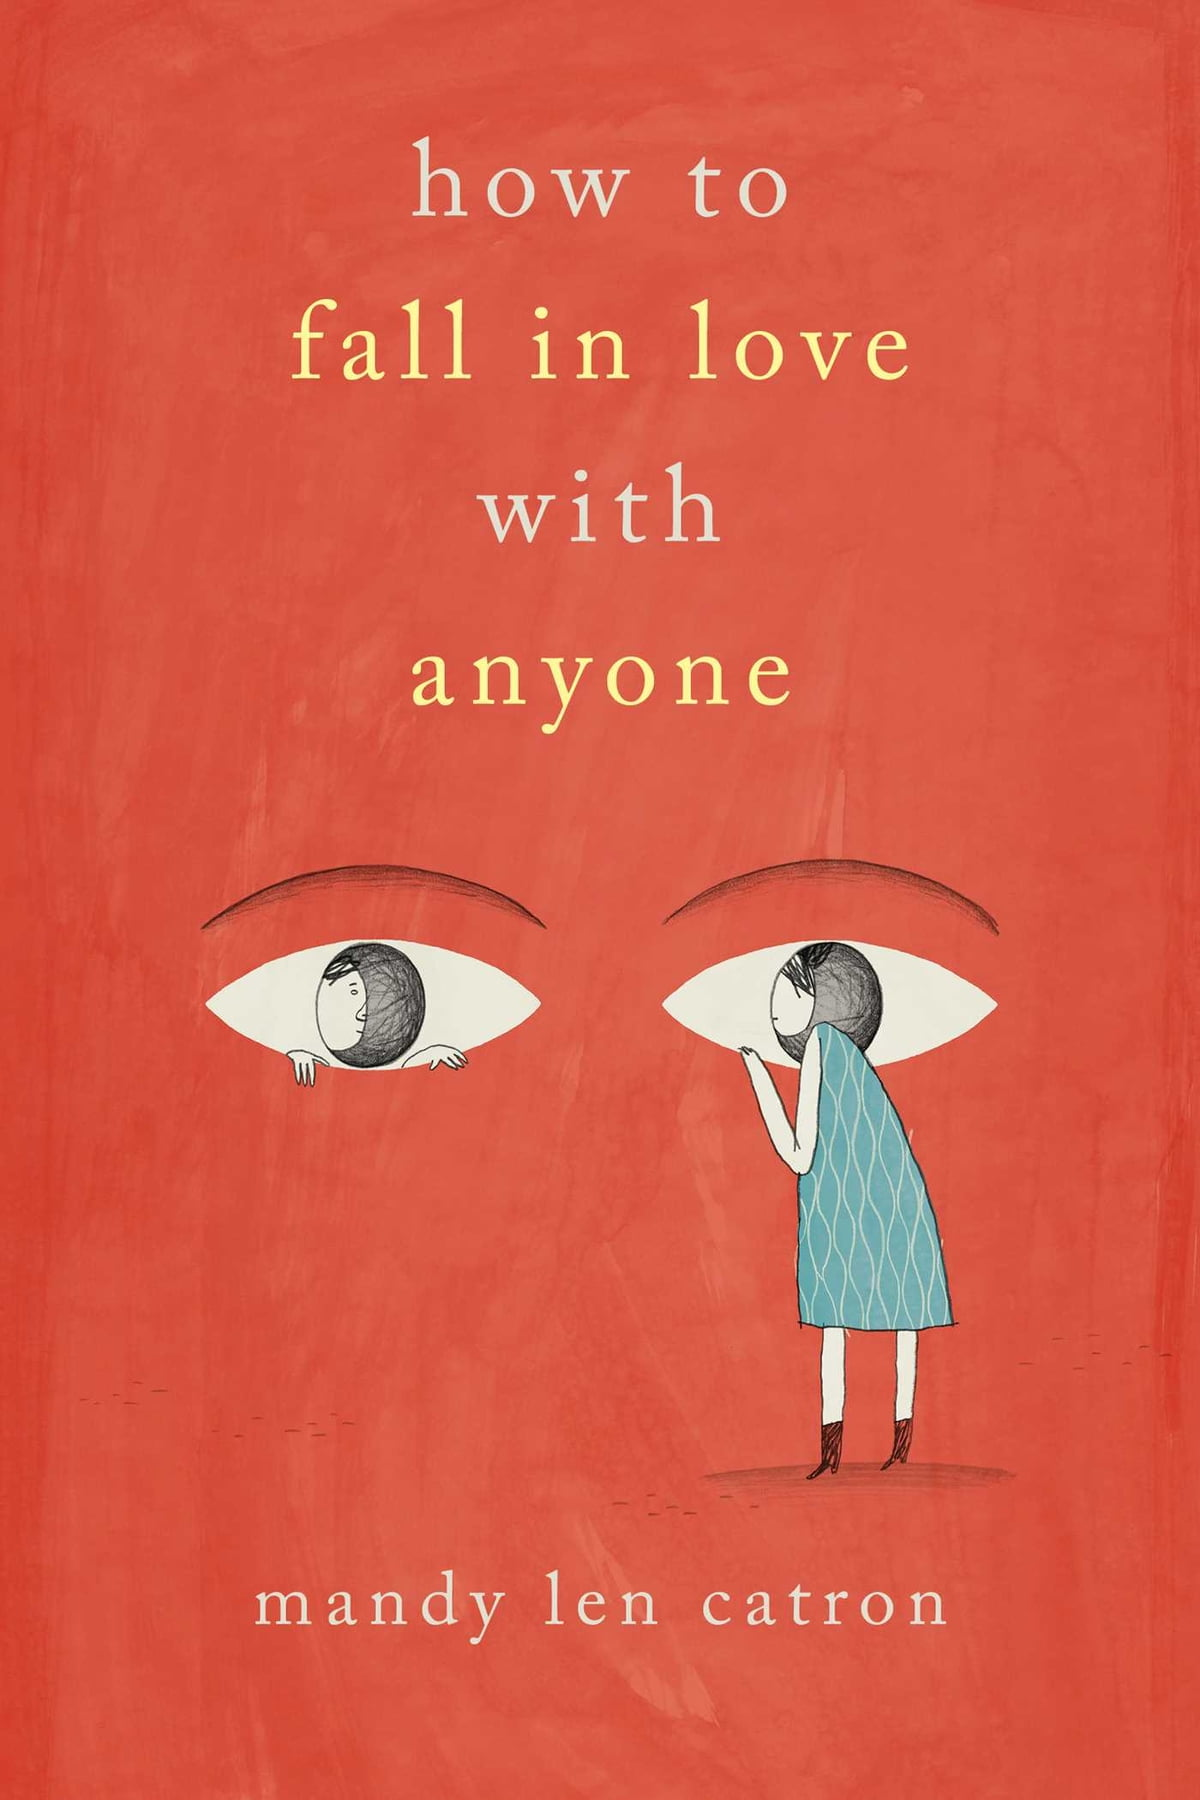 How To Fall In Love With Anyone  A Memoir In Essays Ebook By Mandy Len